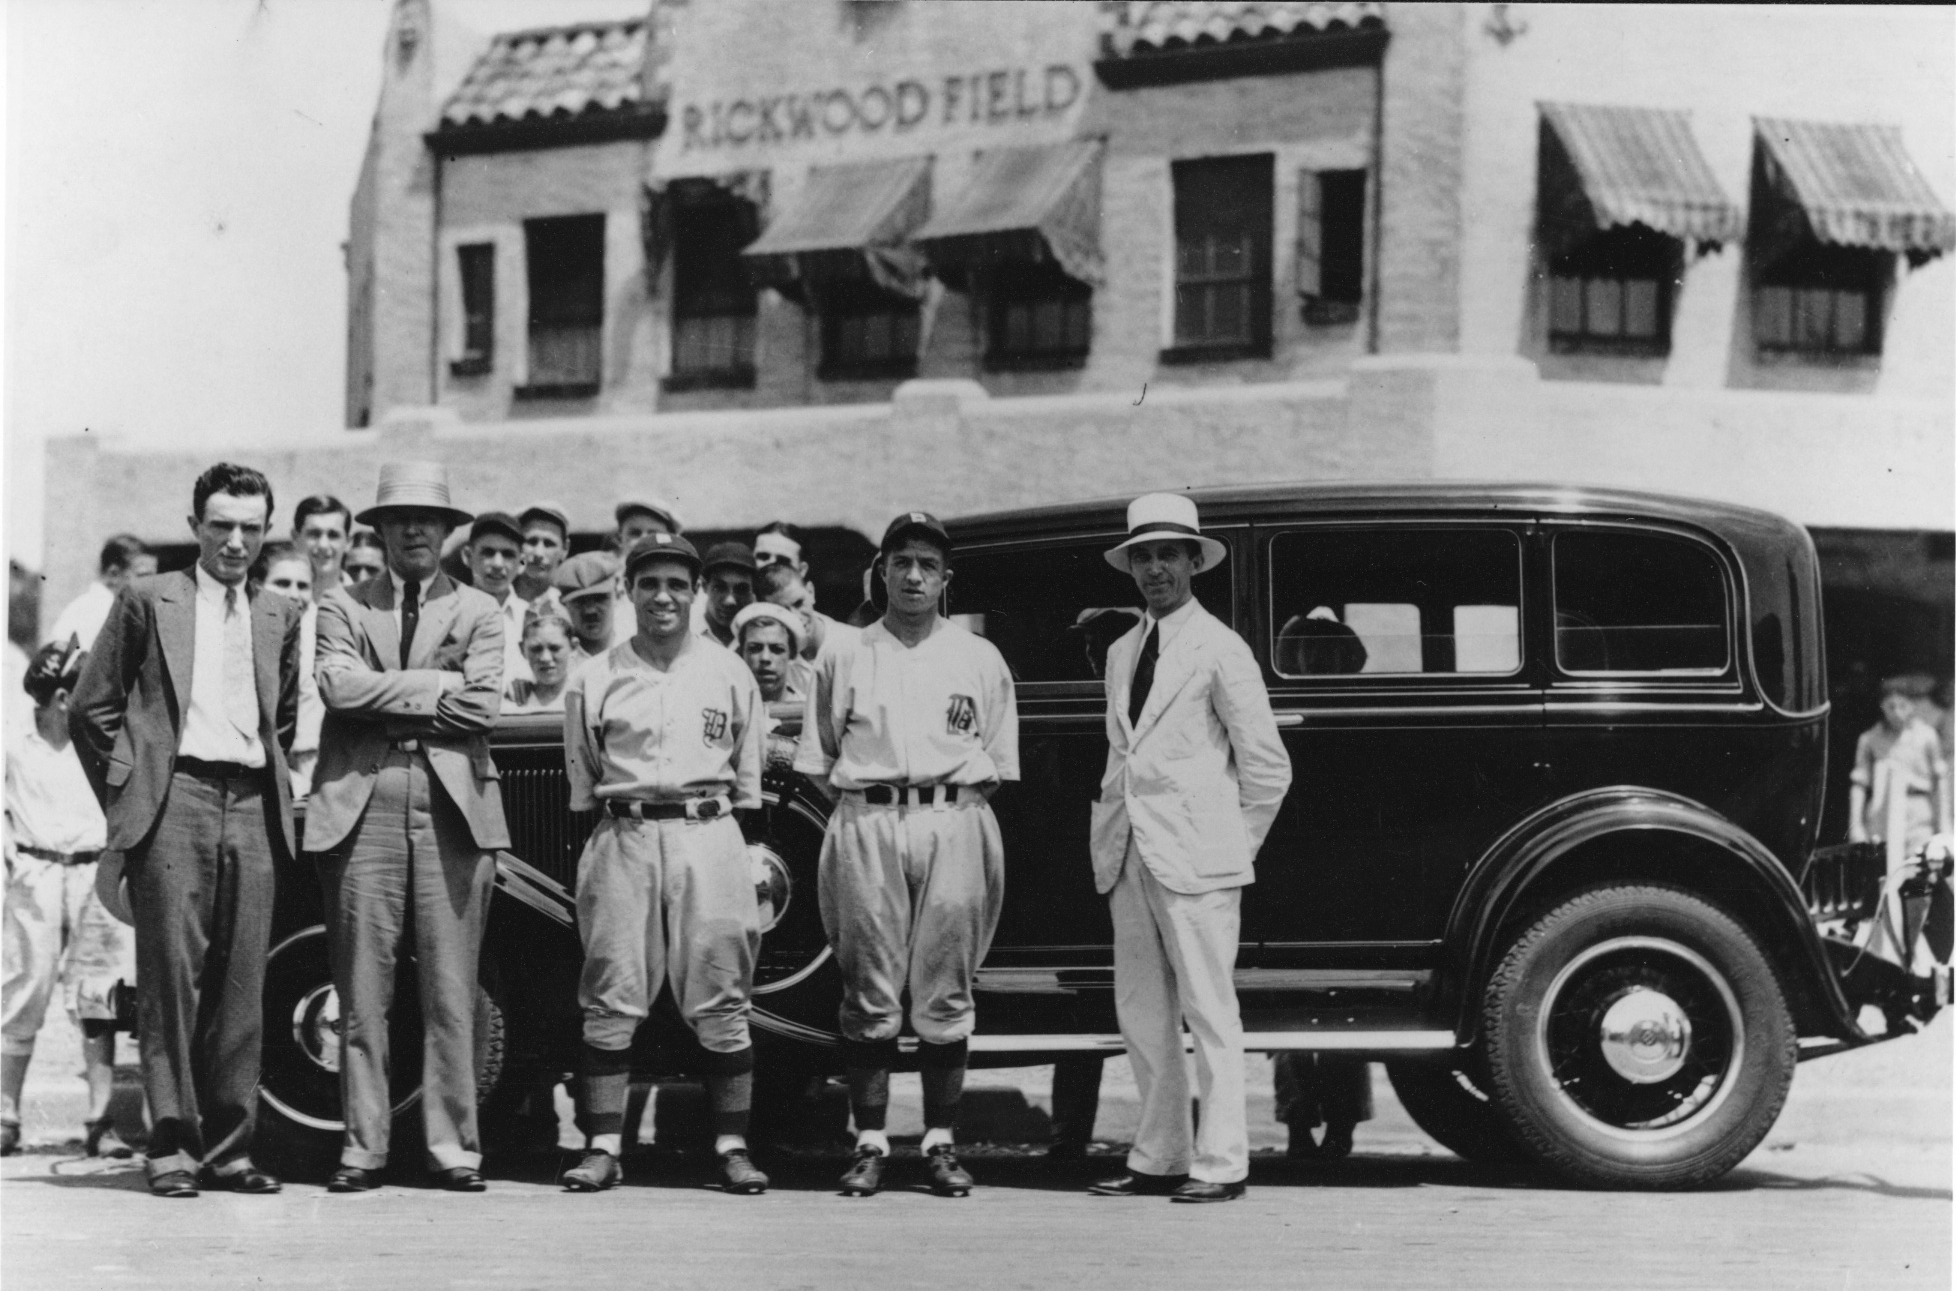 Barons ballplayers and fans pose in front of Rickwood's distinctive entrance, 1930. (Chuck Stewart)